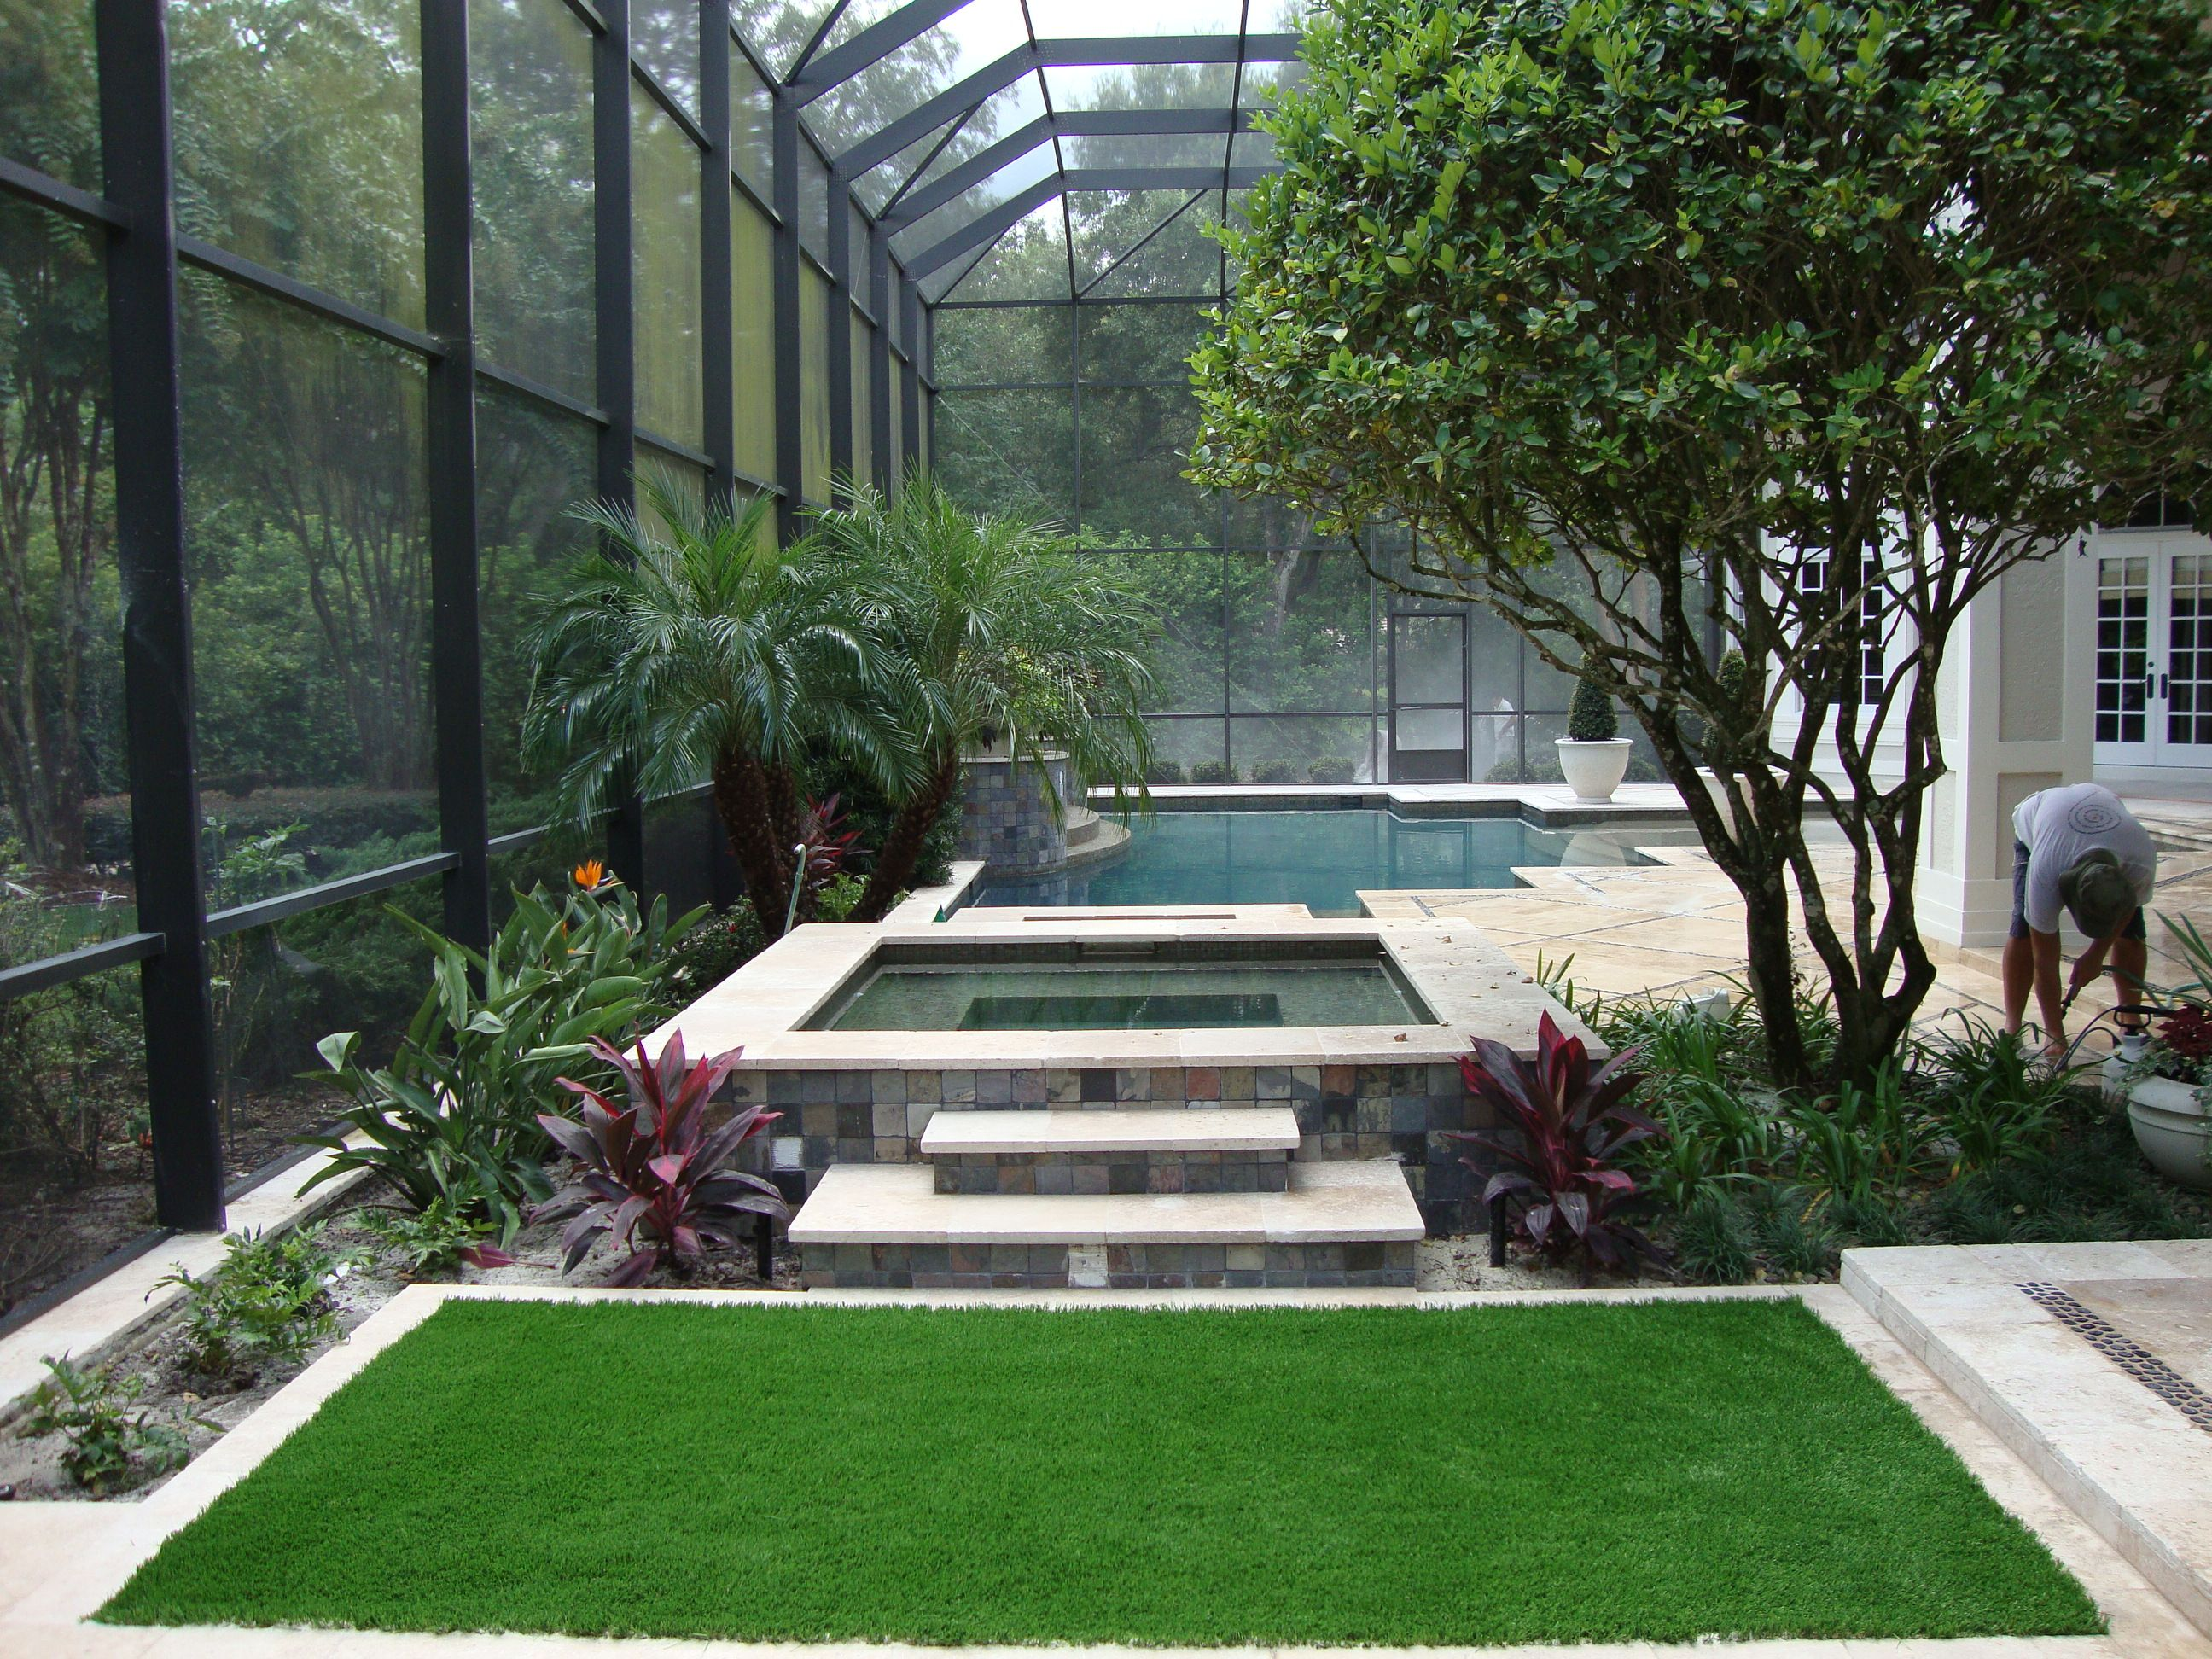 When Installed On Your Back Patio Inside Your Pool Cage Fieldturf Artificial Grass Brings The Outdoors Inside To Yo Pool Cage Backyard Small Backyard Gardens